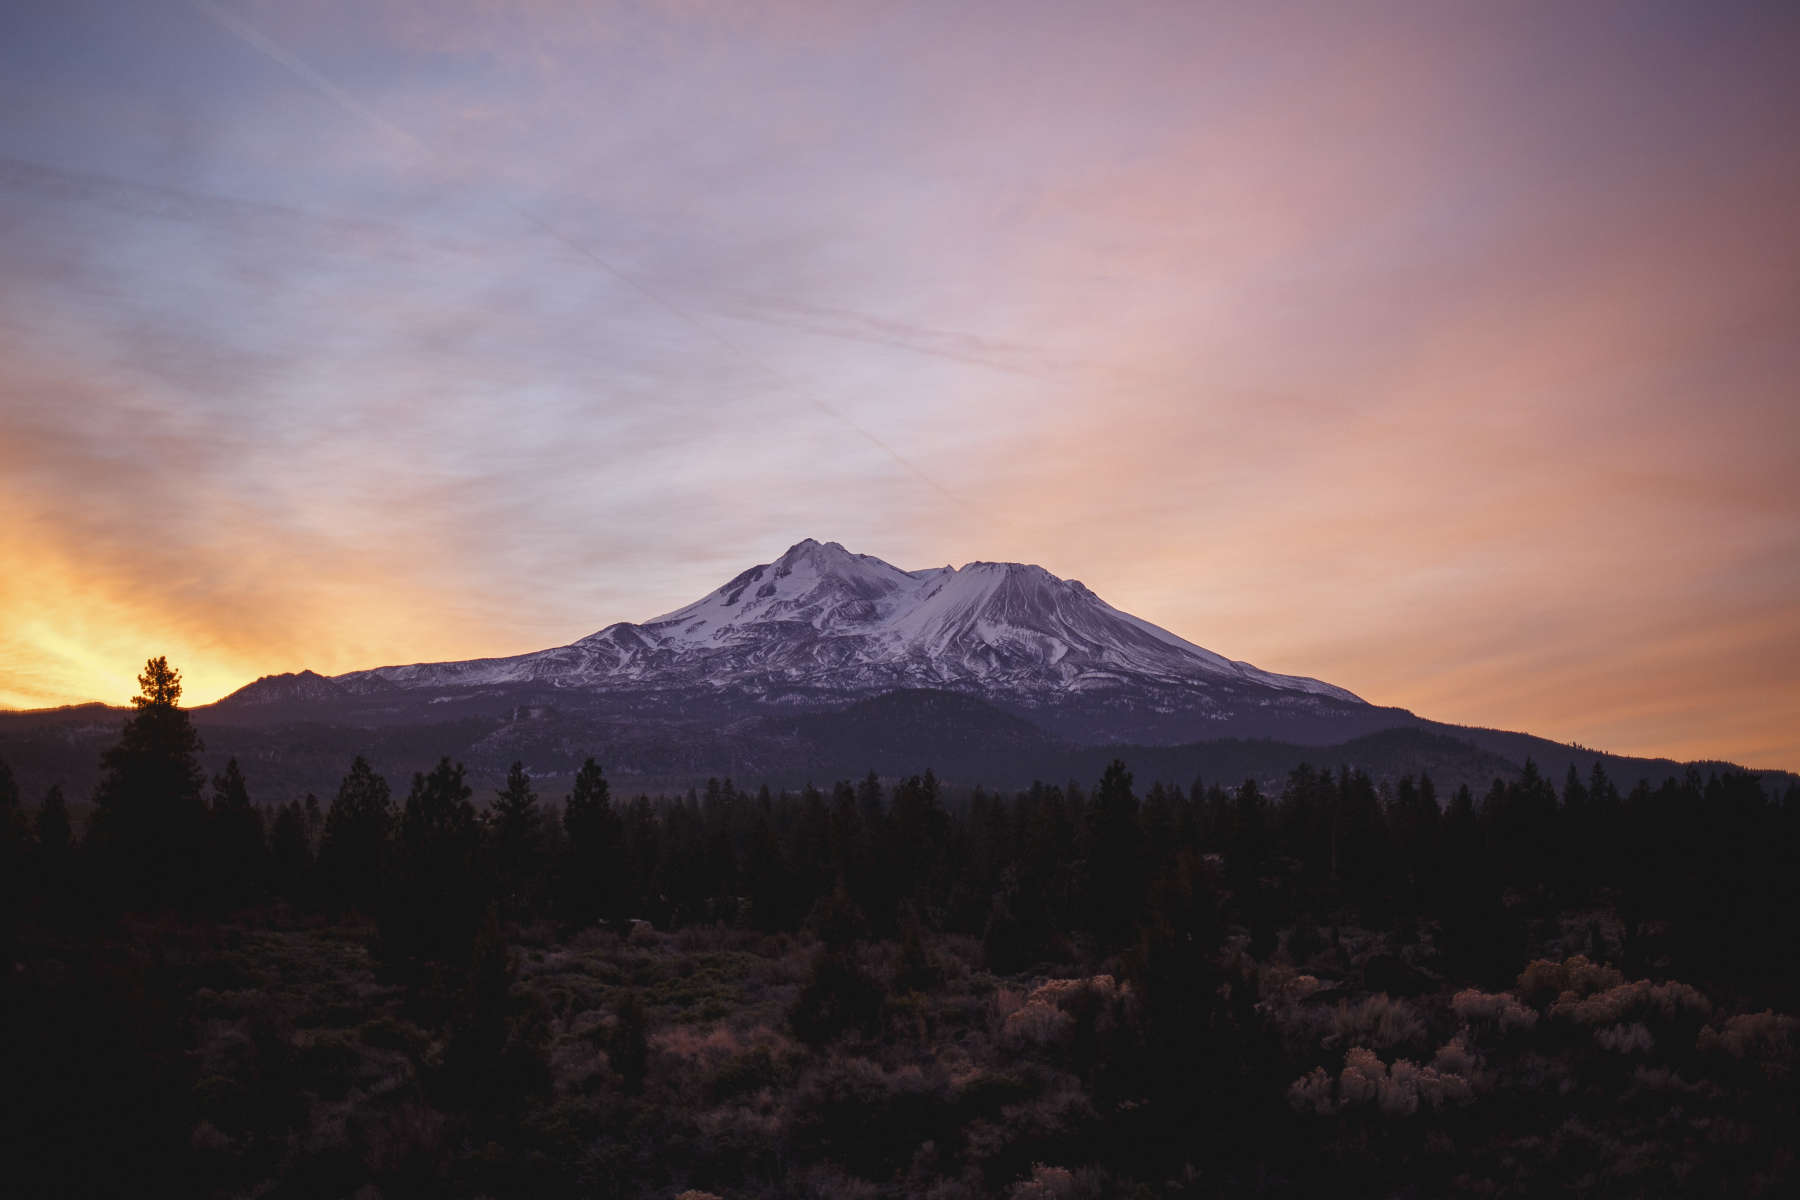 mount shasta dating site Mount shasta history  posted in: hiking, mount shasta, mount shasta history,  i meet with the two gentlemen next week and we will work on dating the painting.